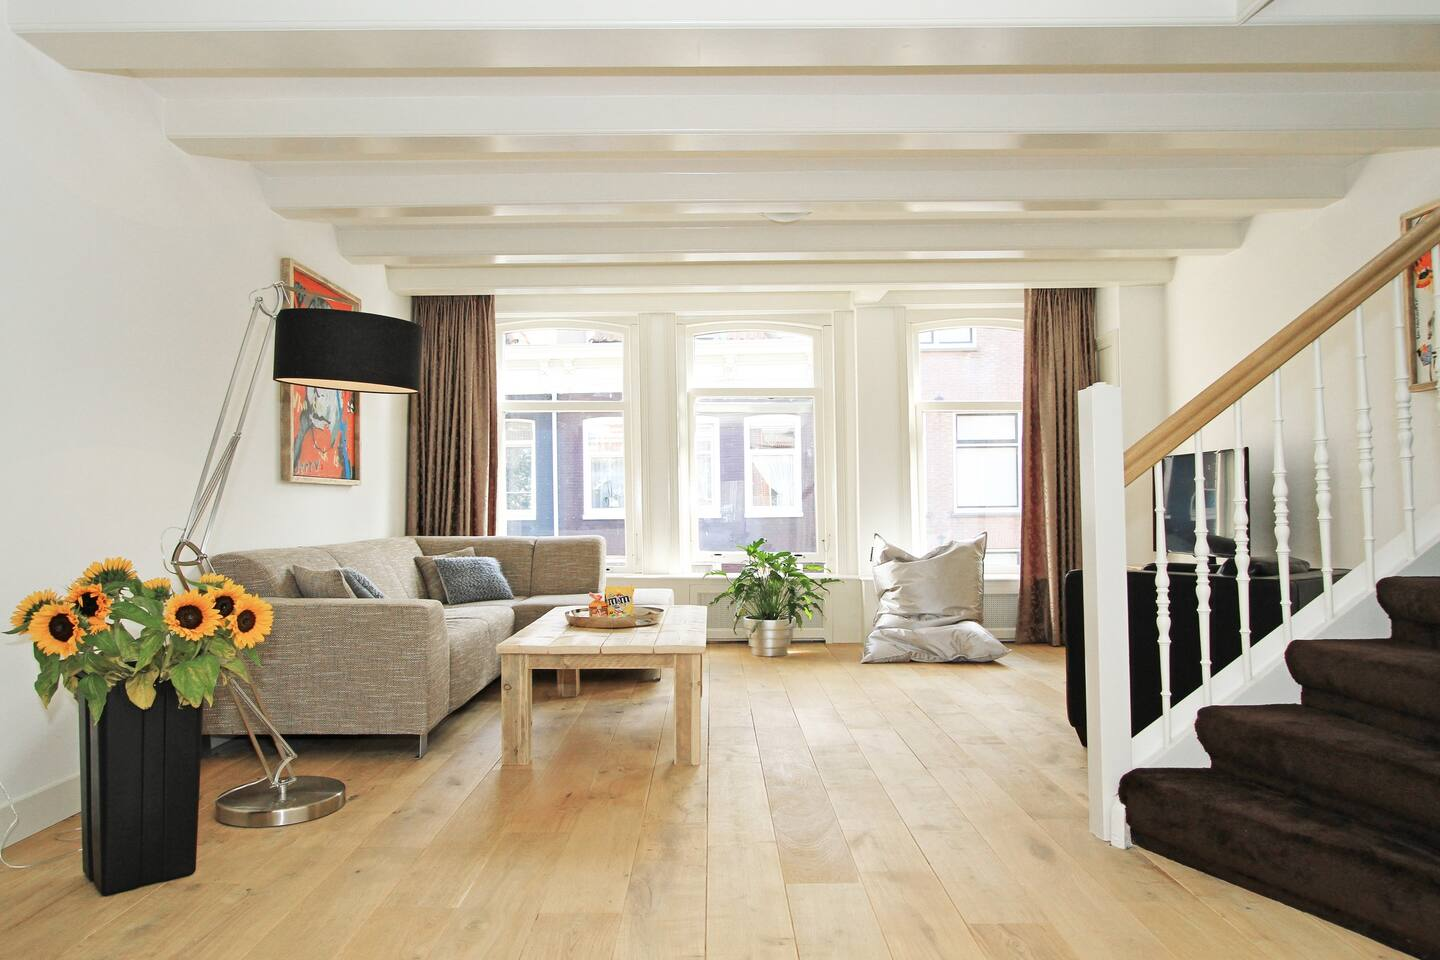 spacious bright living room (80 m2) overlooking the street